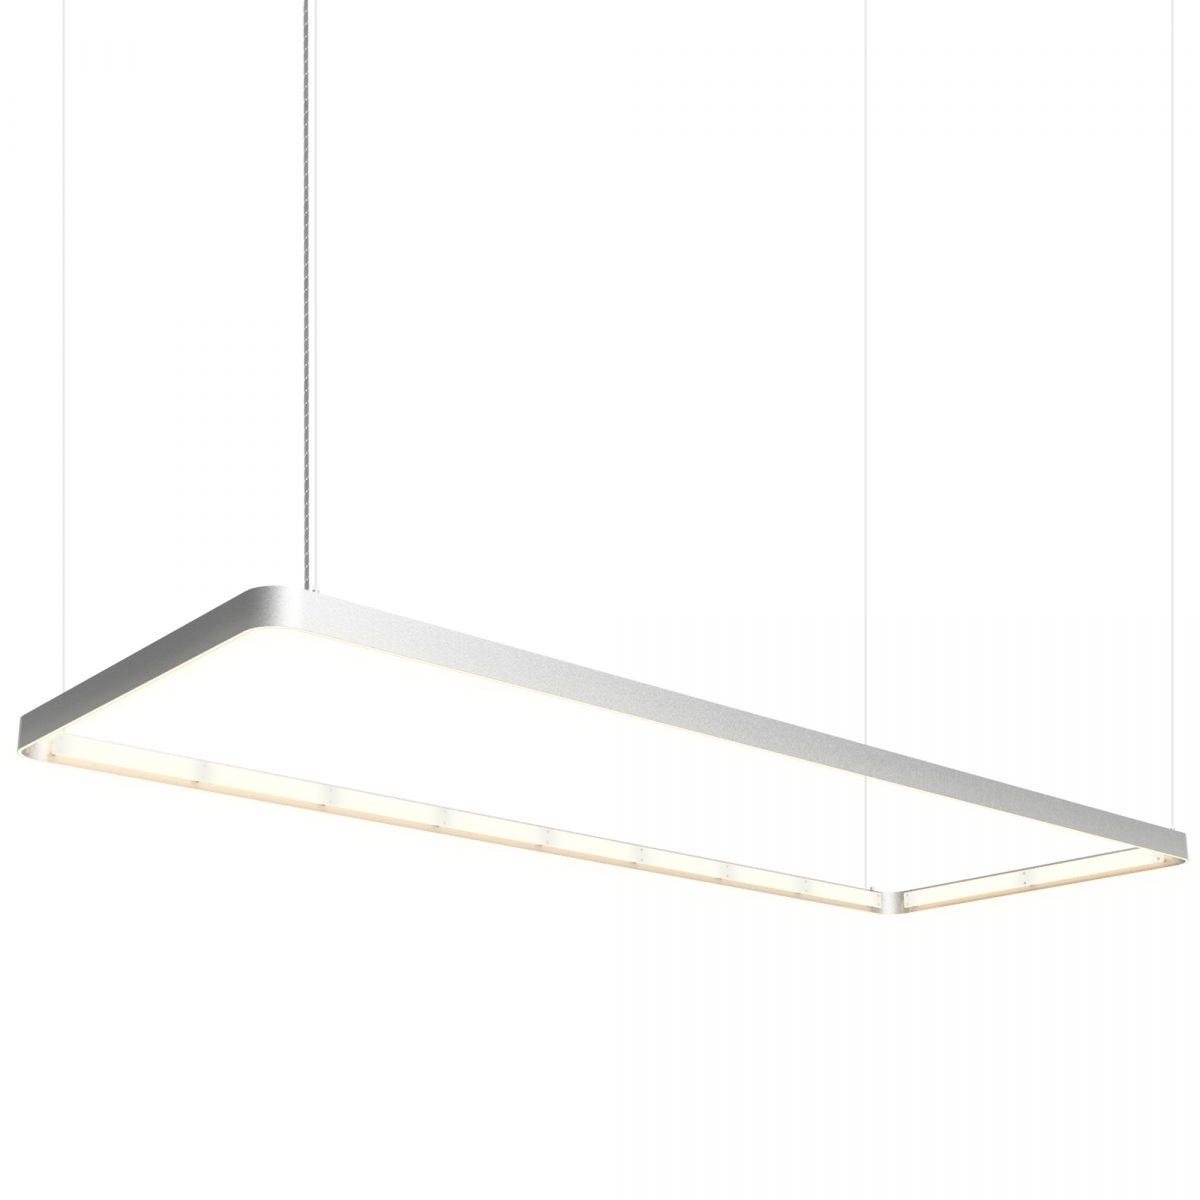 JSPR Eden Deco 75×200 Silver Rectangle